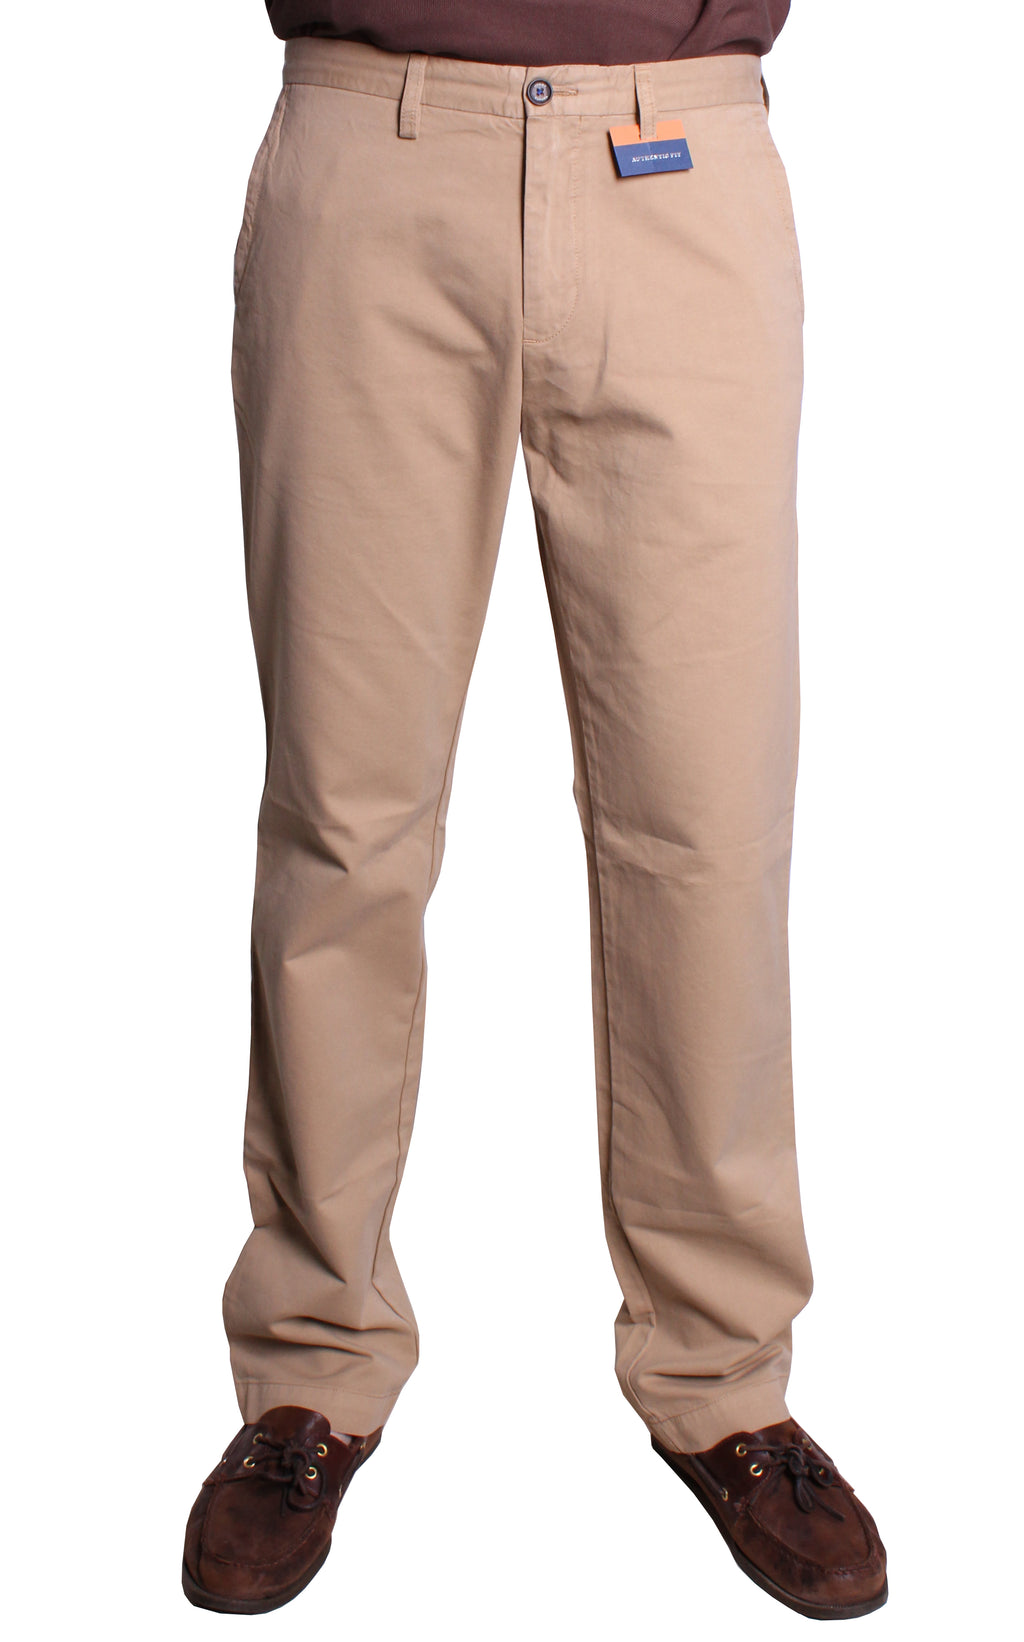 Tommy Bahama Island Chino Pants in Tanned